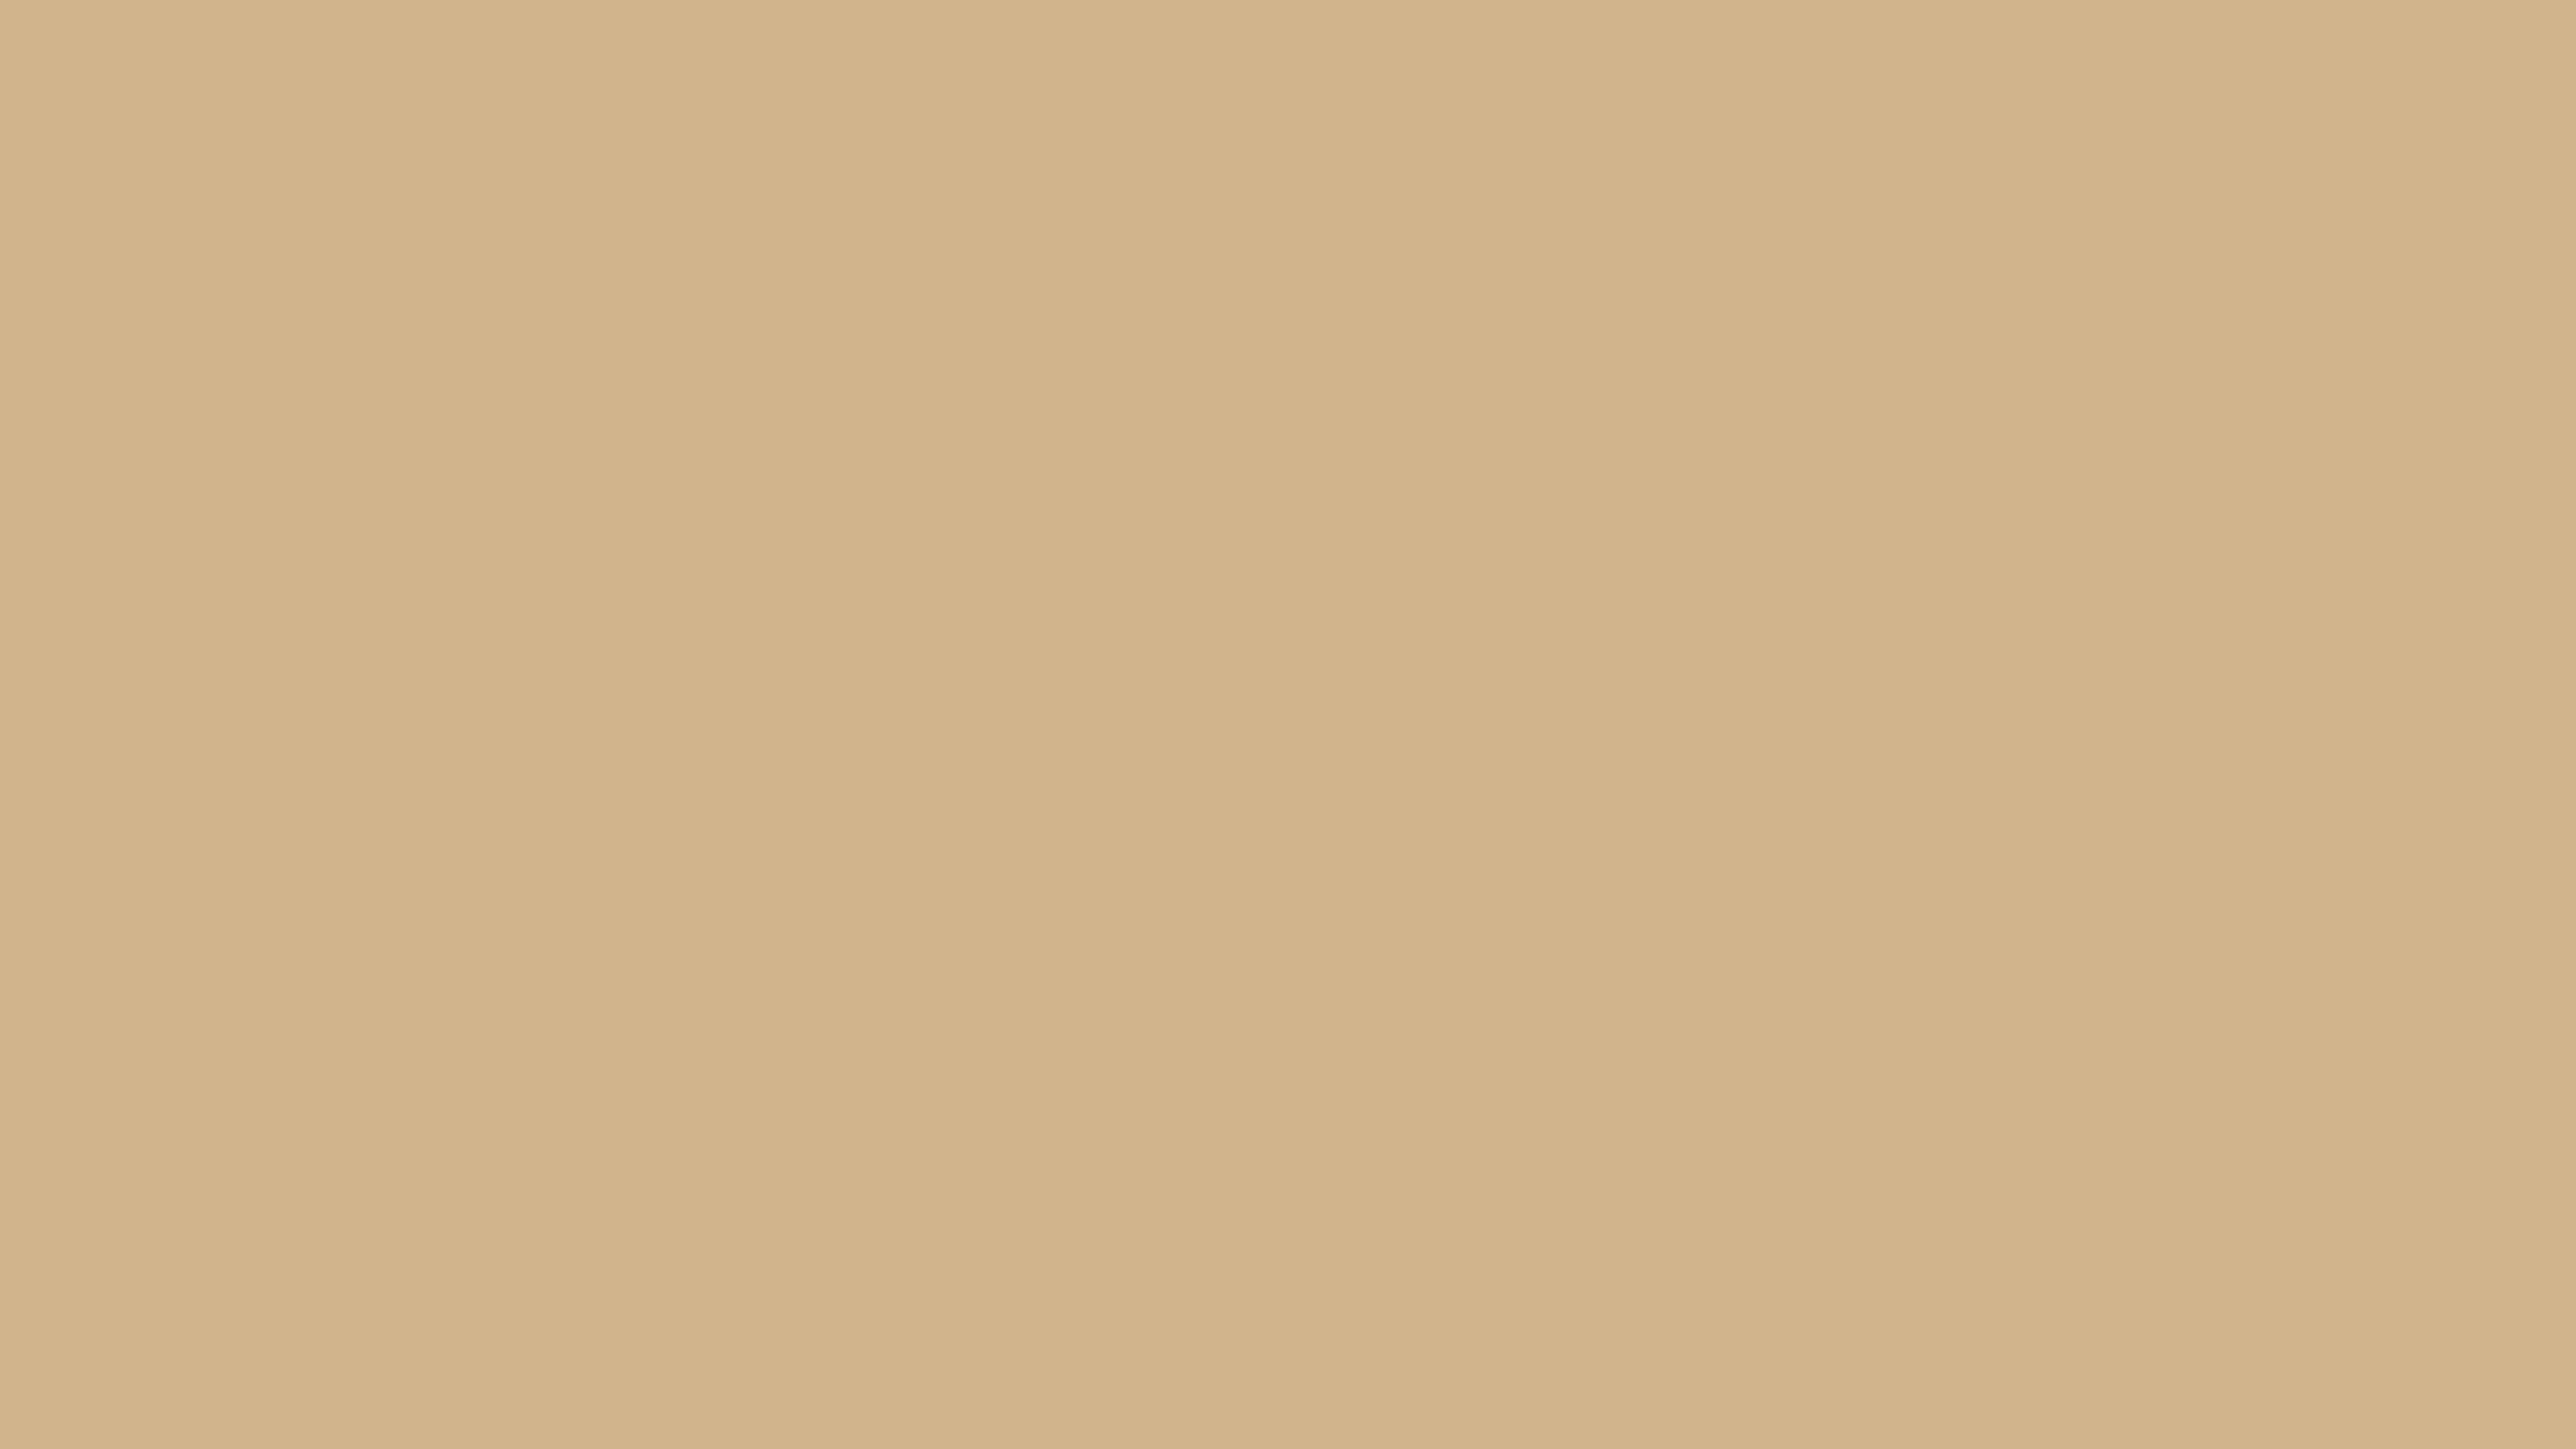 Tan Solid Color Background Wallpaper [5120x2880]